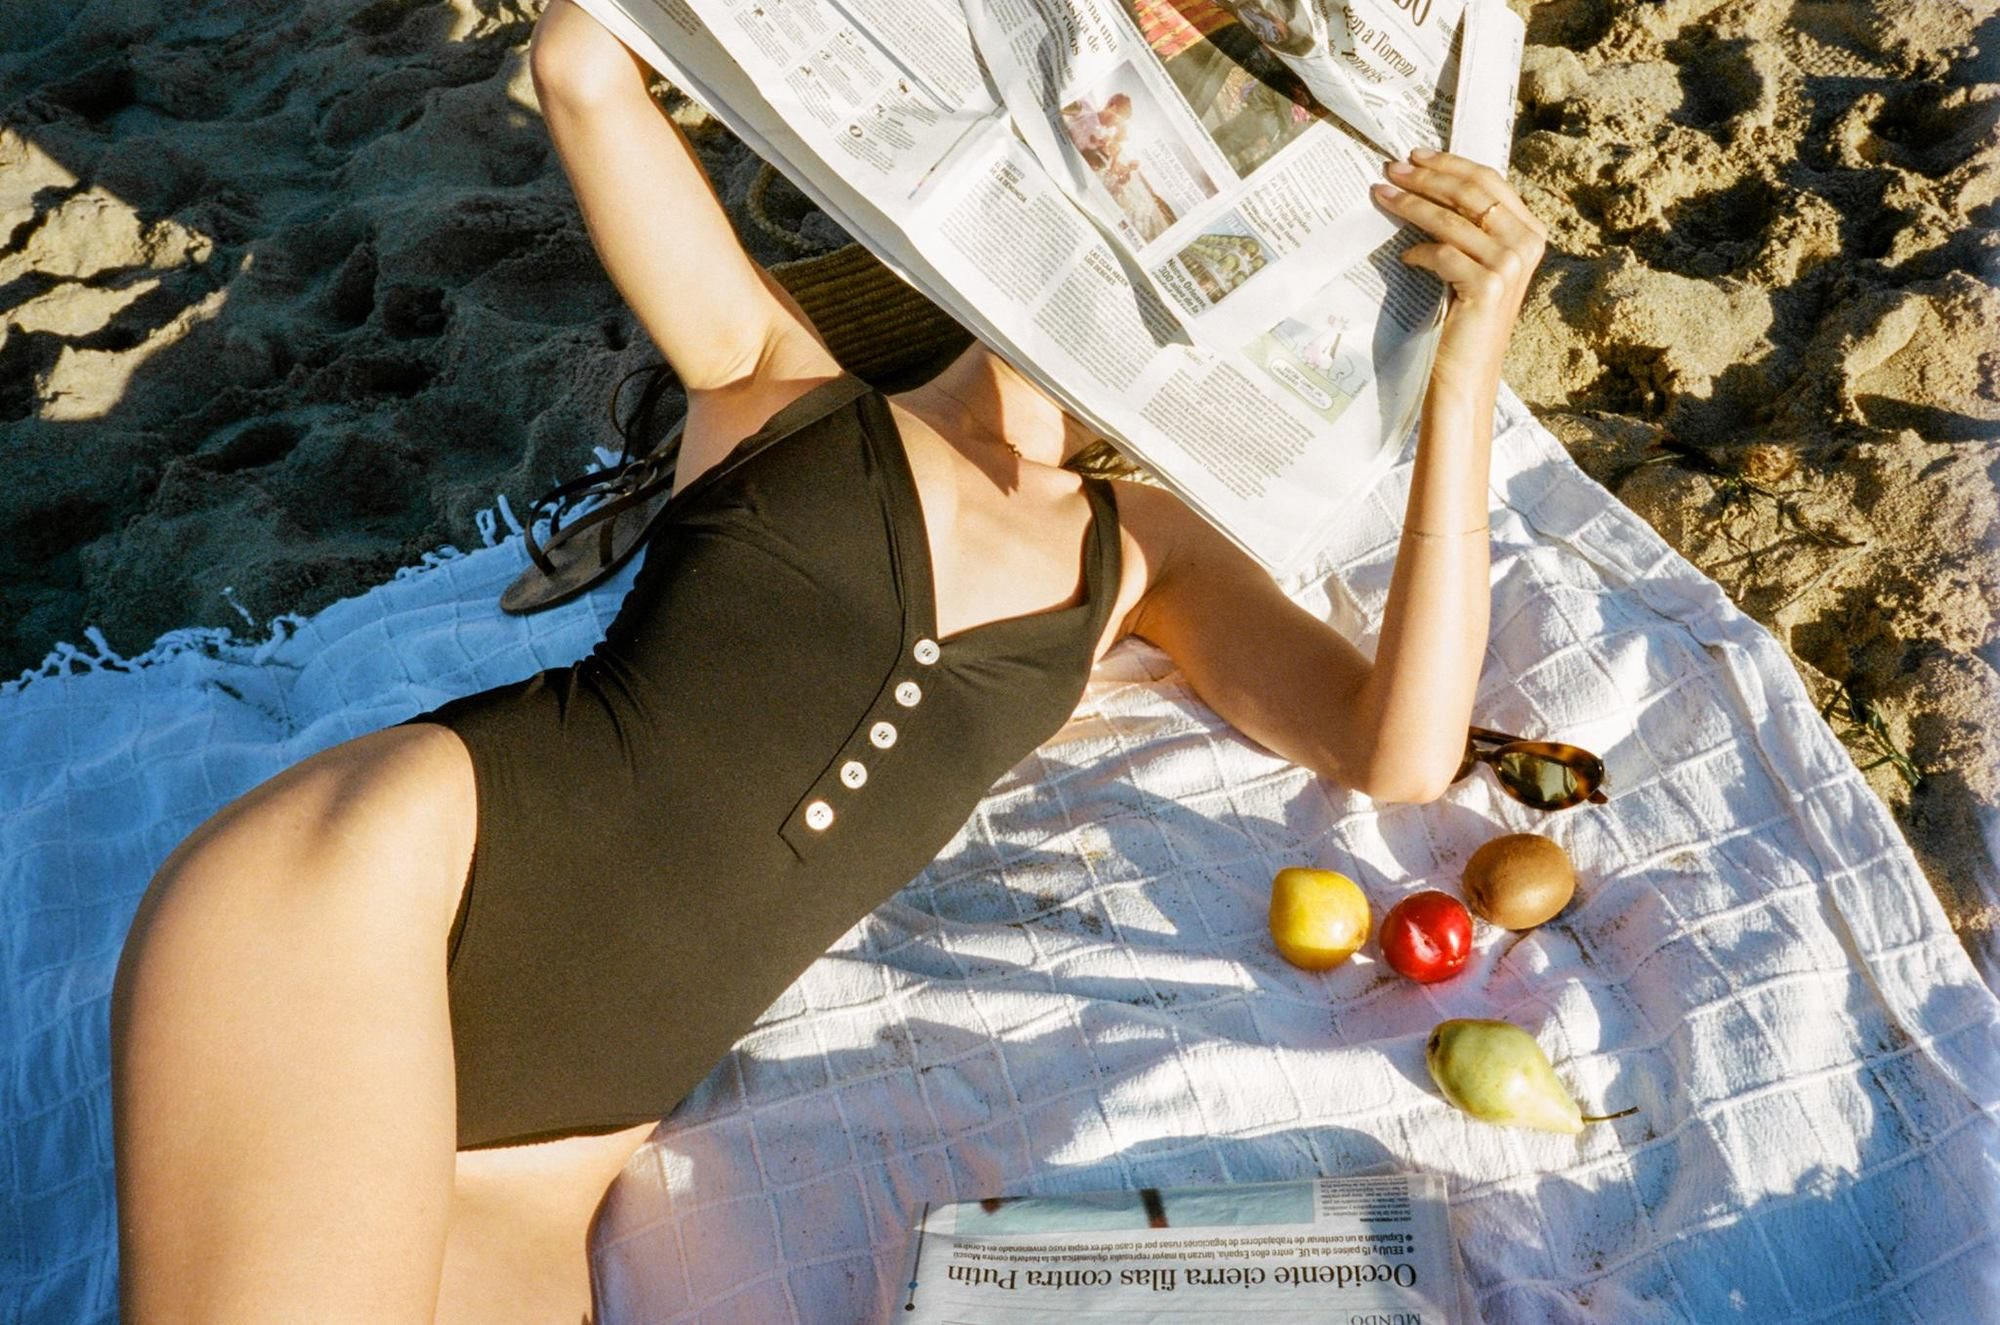 A woman lying on a beach, Italian newspaper open as she reads it and wears a black swimsuit from Jeanne Damas' French brand Rouje.